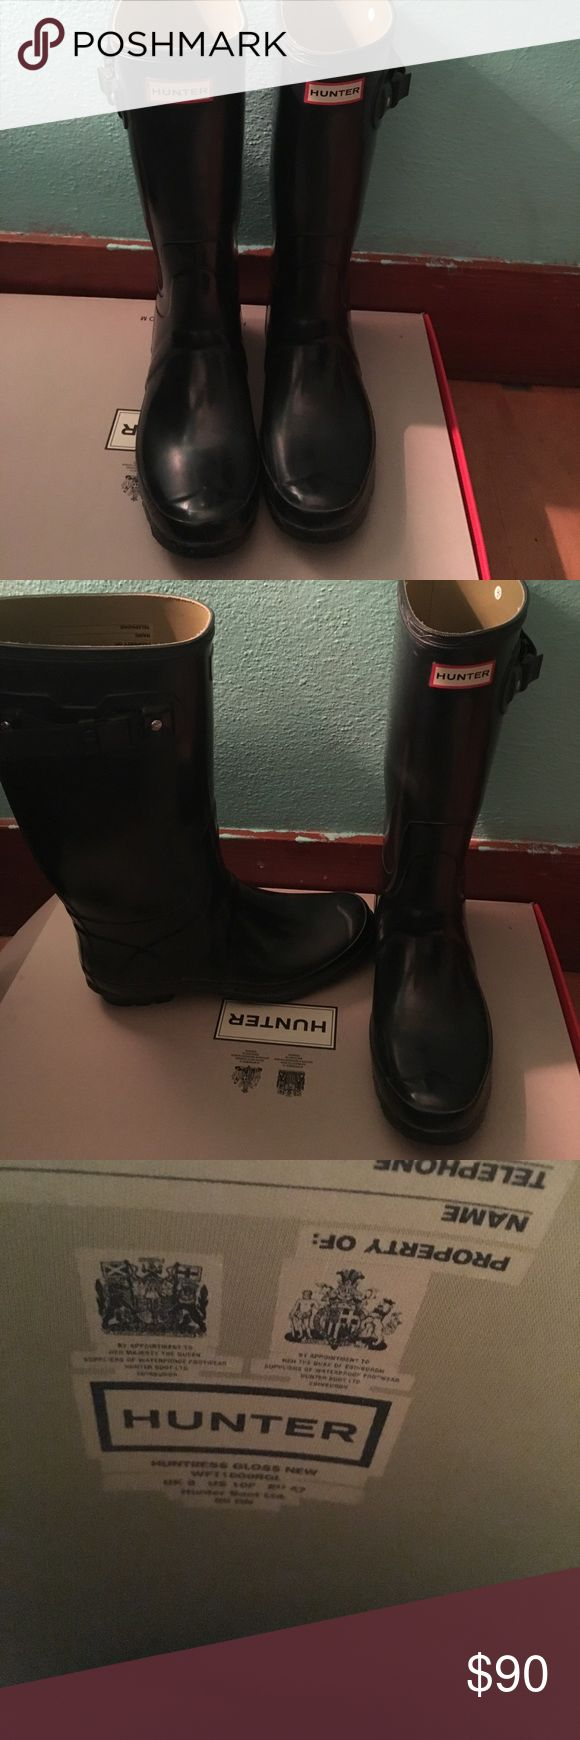 Hunter boots Comes with original box. Look new. I am reposhing because they are too big on me. They're size 10, tall, with a wide calf. Hunter Shoes Winter & Rain Boots